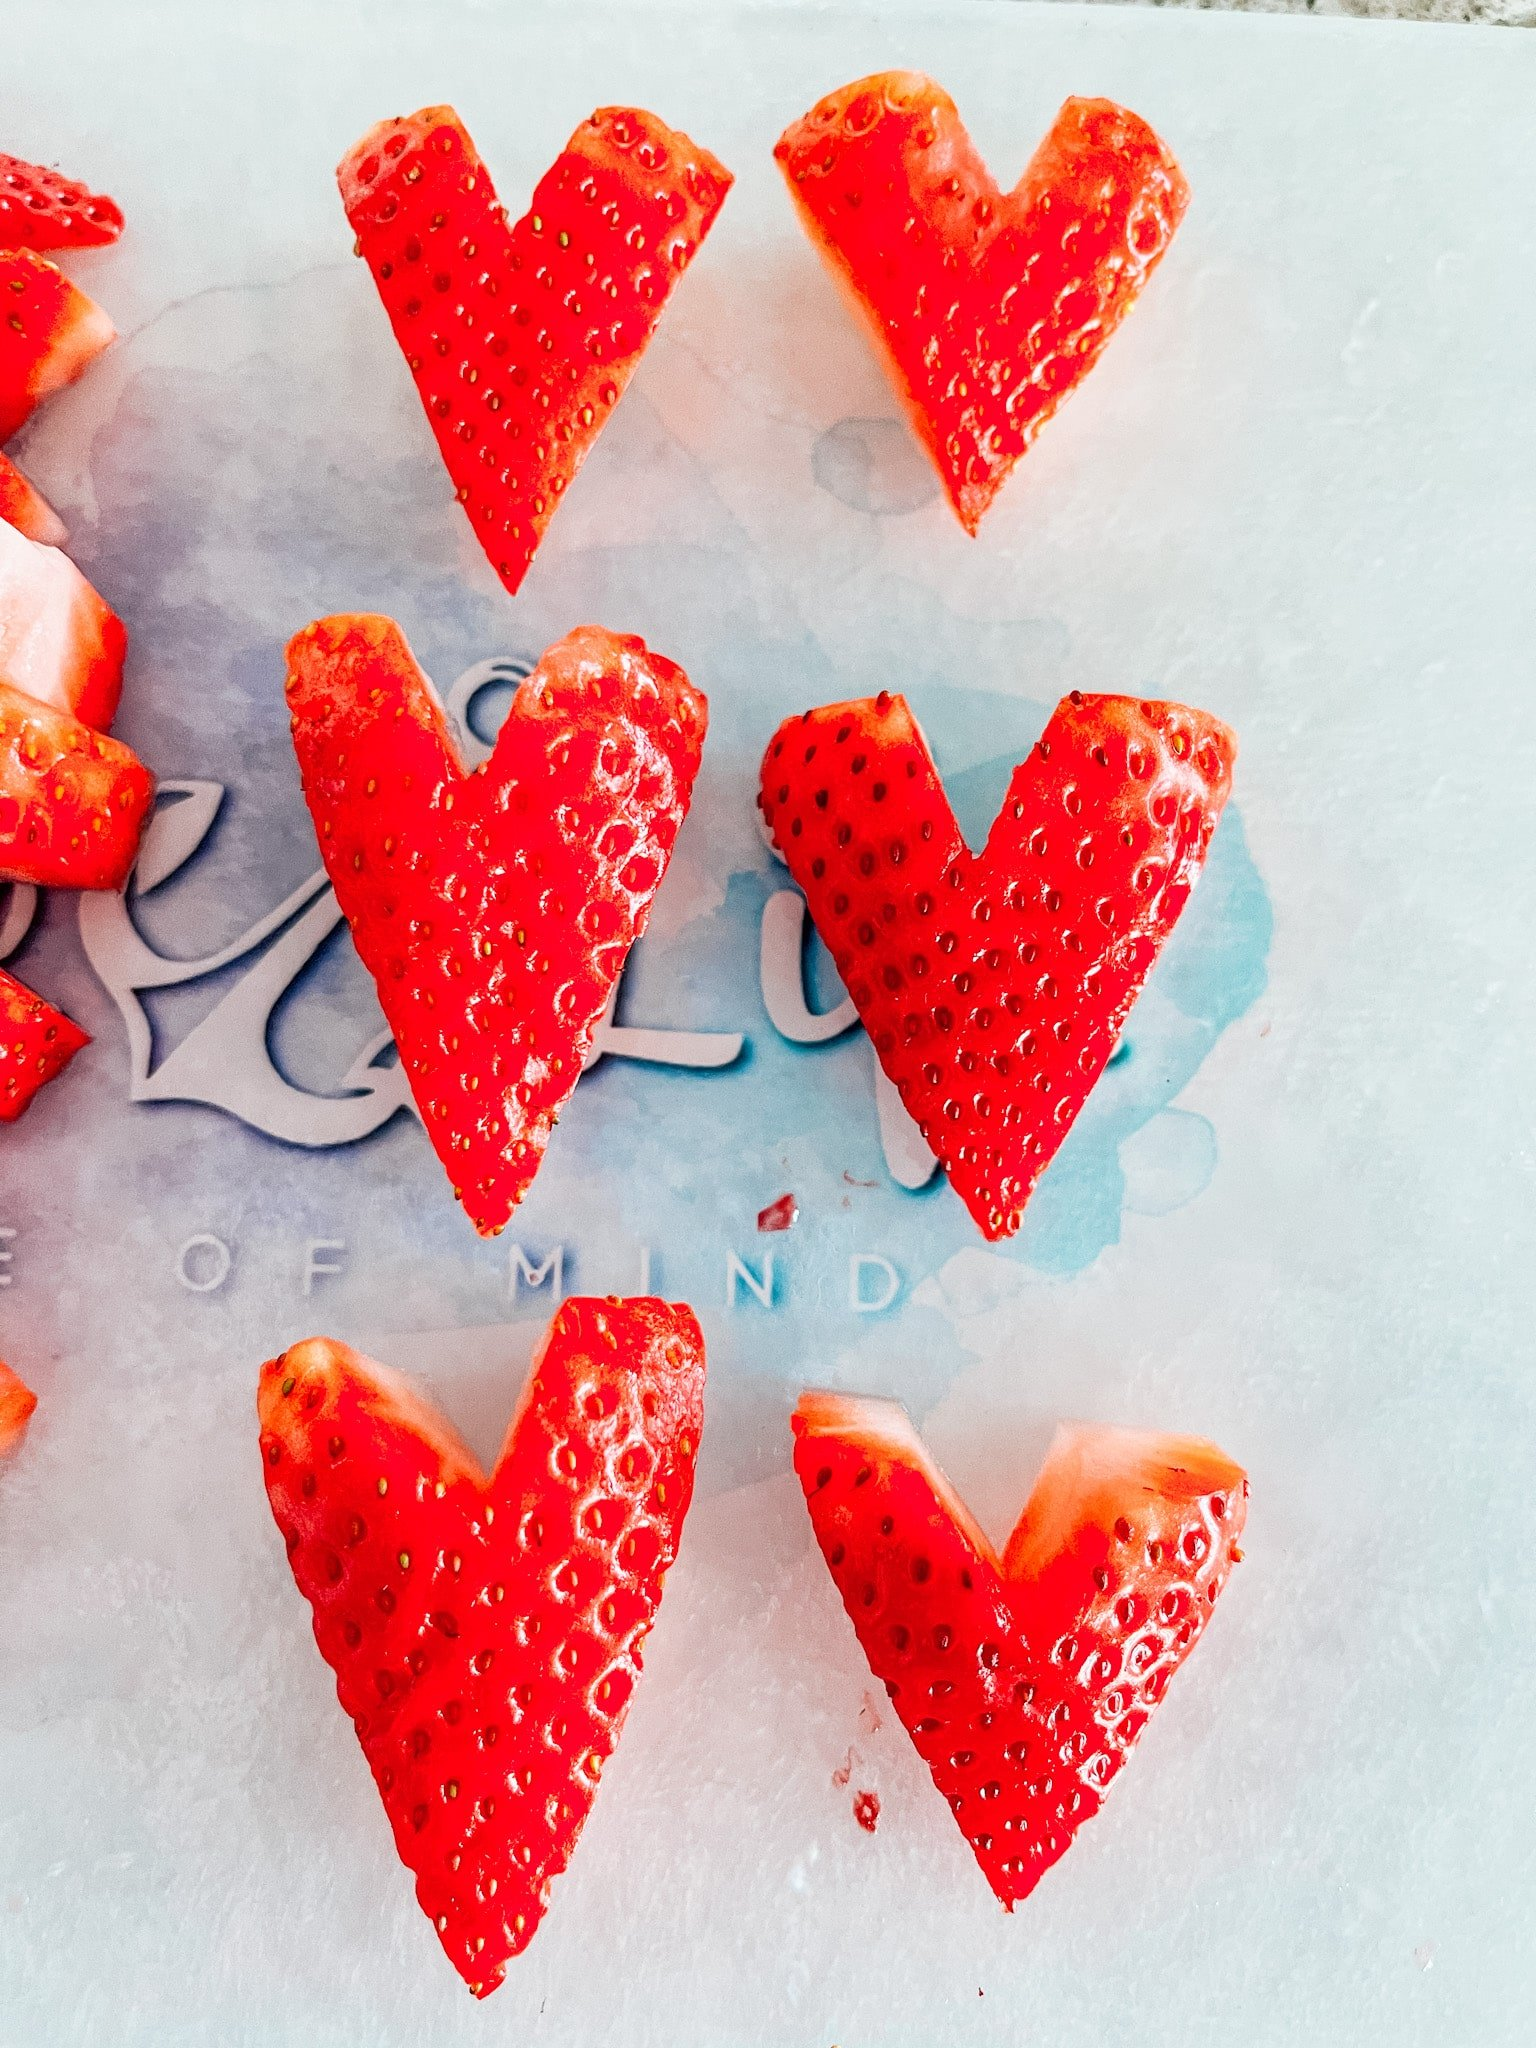 strawberries cut into heart shapes